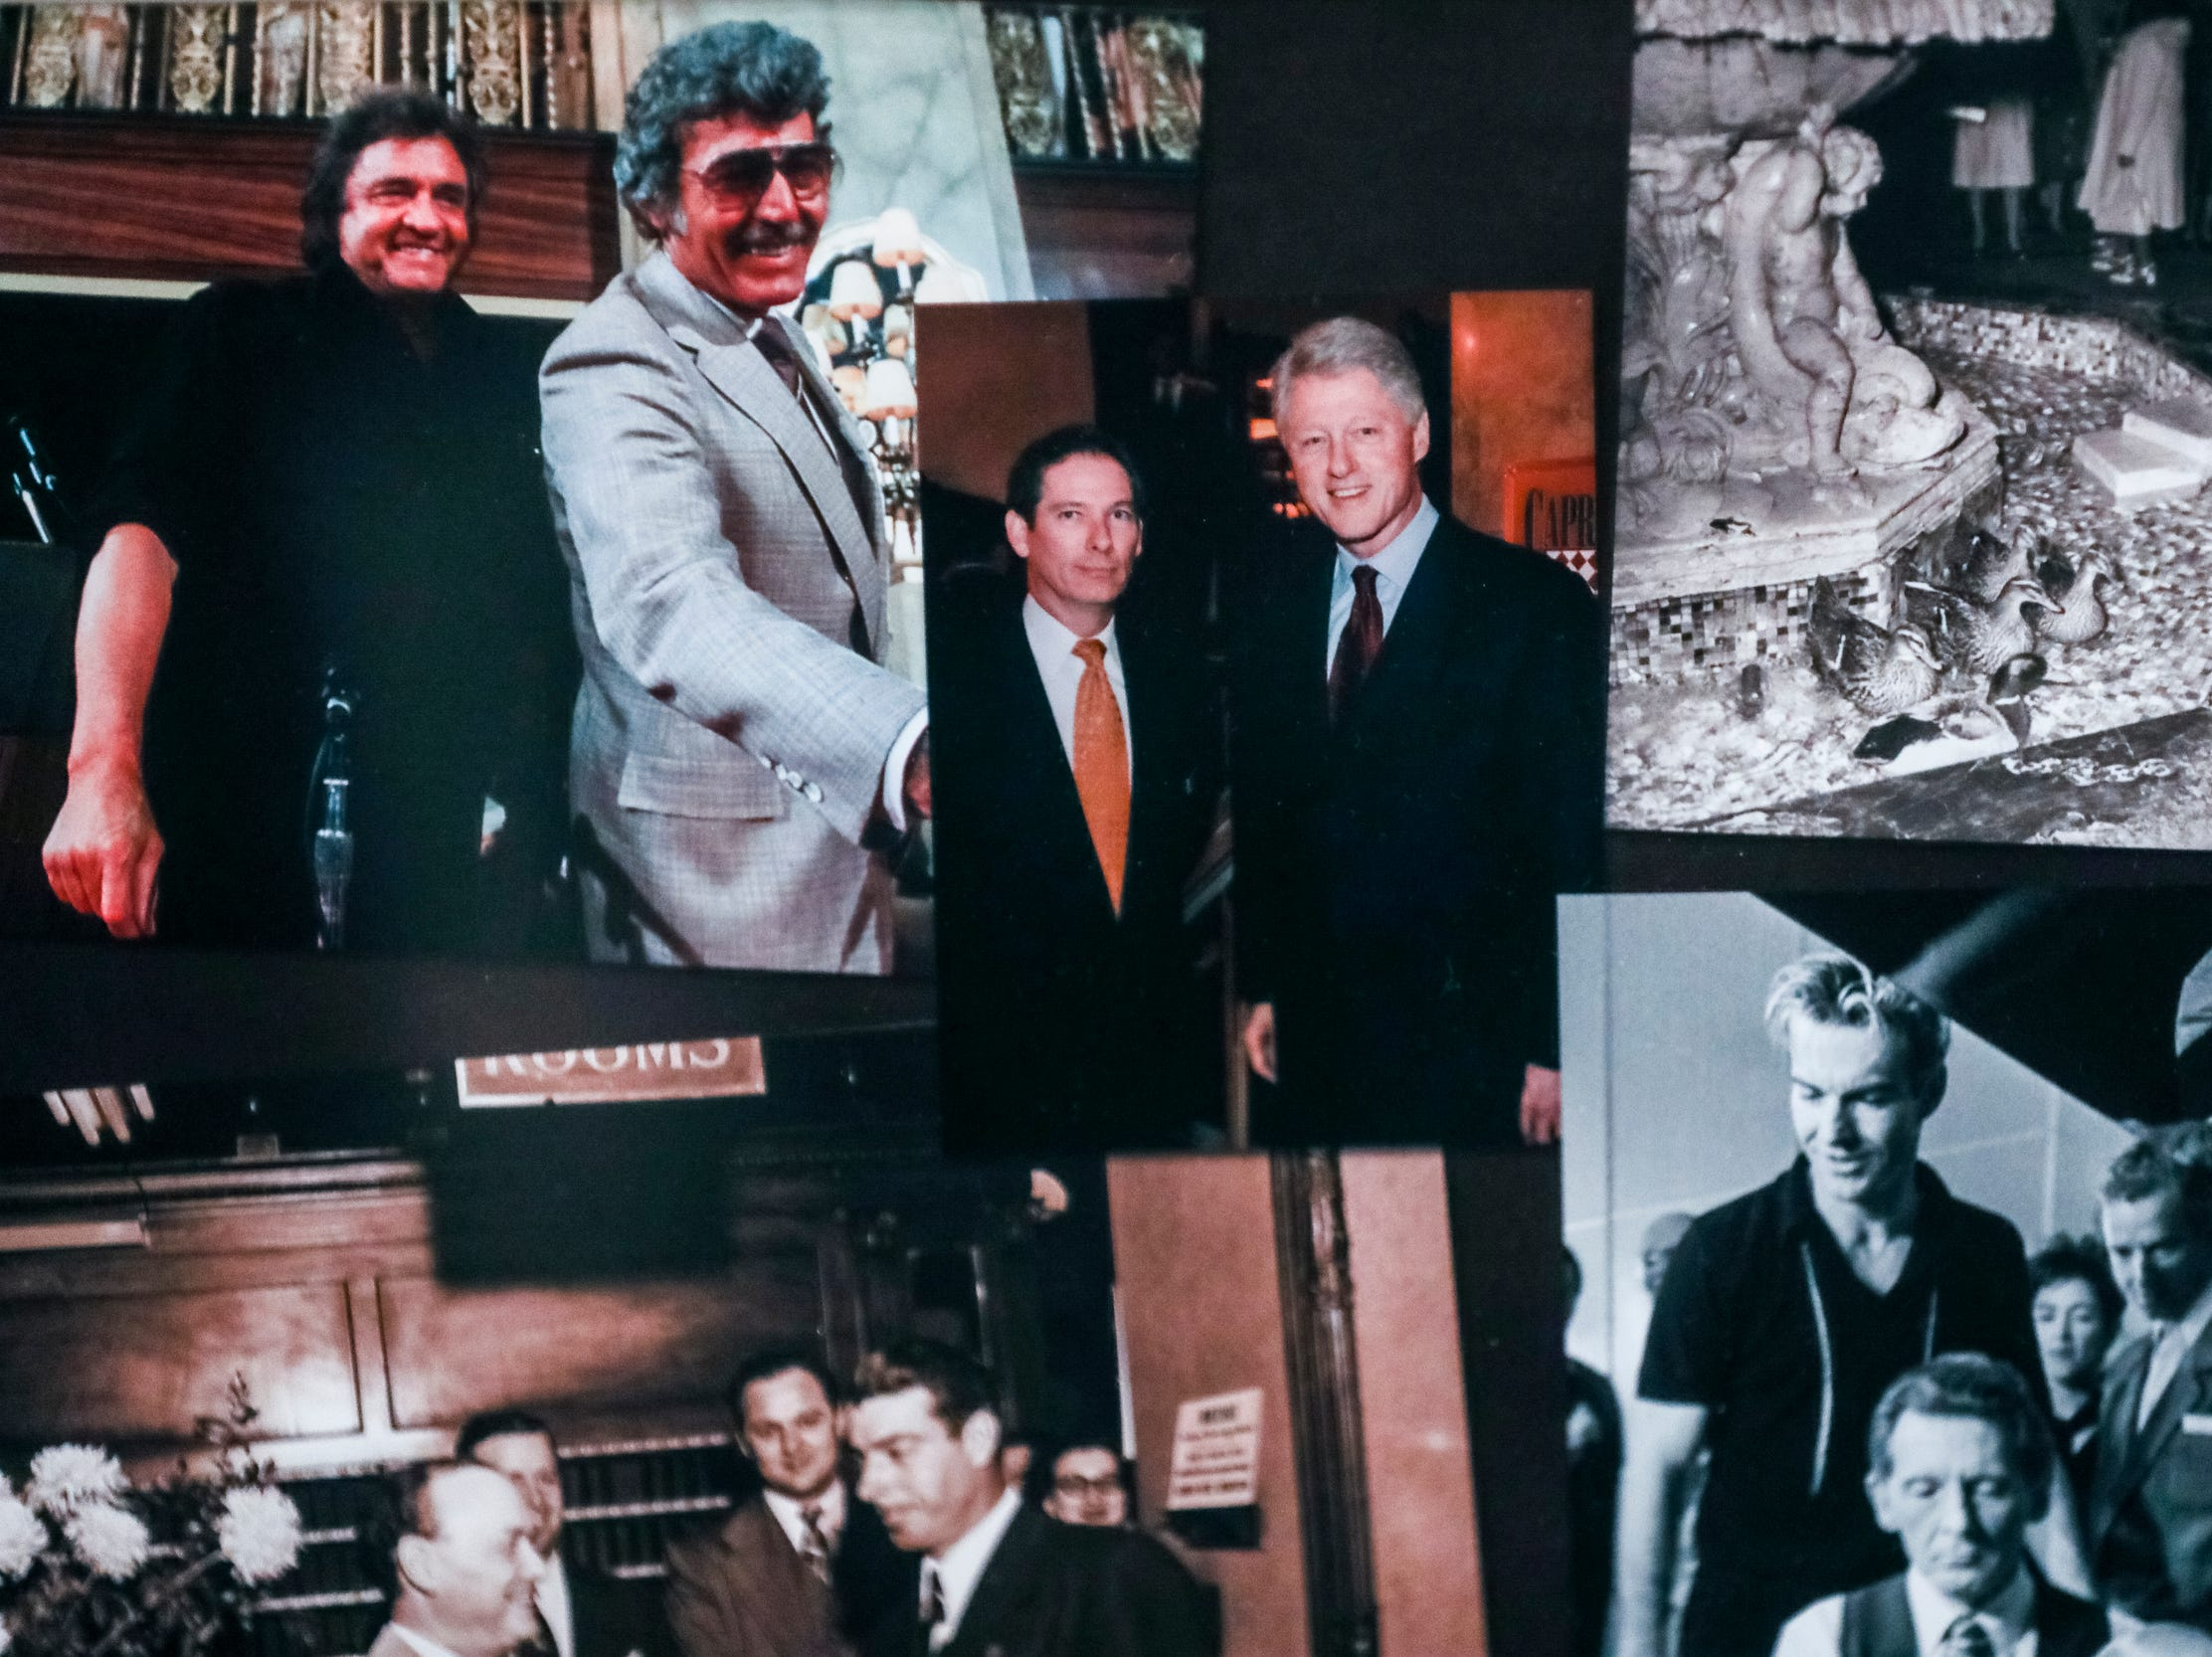 February 06, 2019 - Photos of famous visitors to The Peabody were on display during The Peabody 150th anniversary media launch party. The Peabody Memphis will celebrate its 150th anniversary in 2019 with a series of special offers and events.